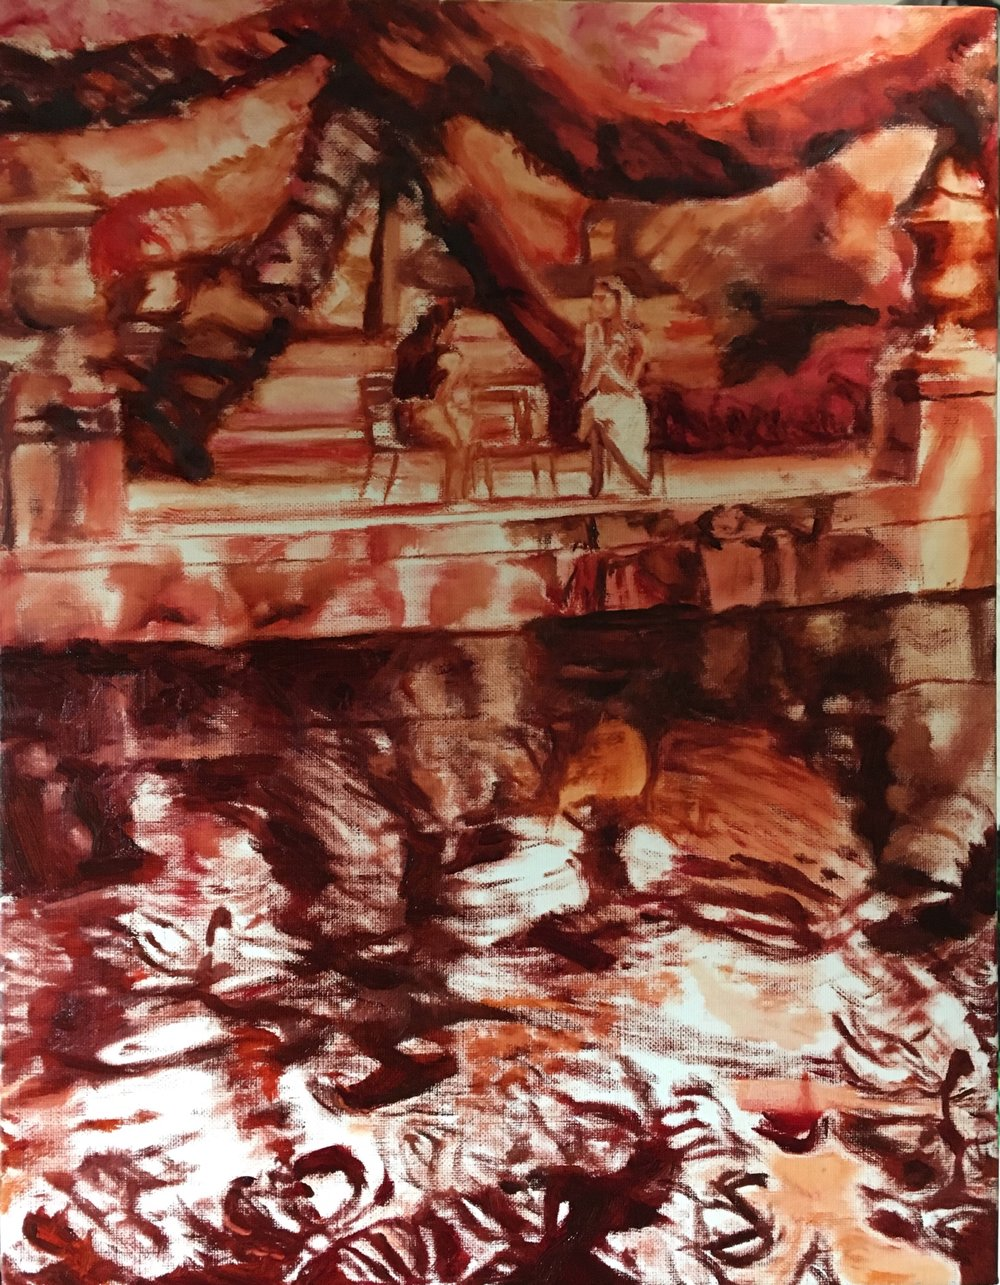 Underpainting (done on 27 July)